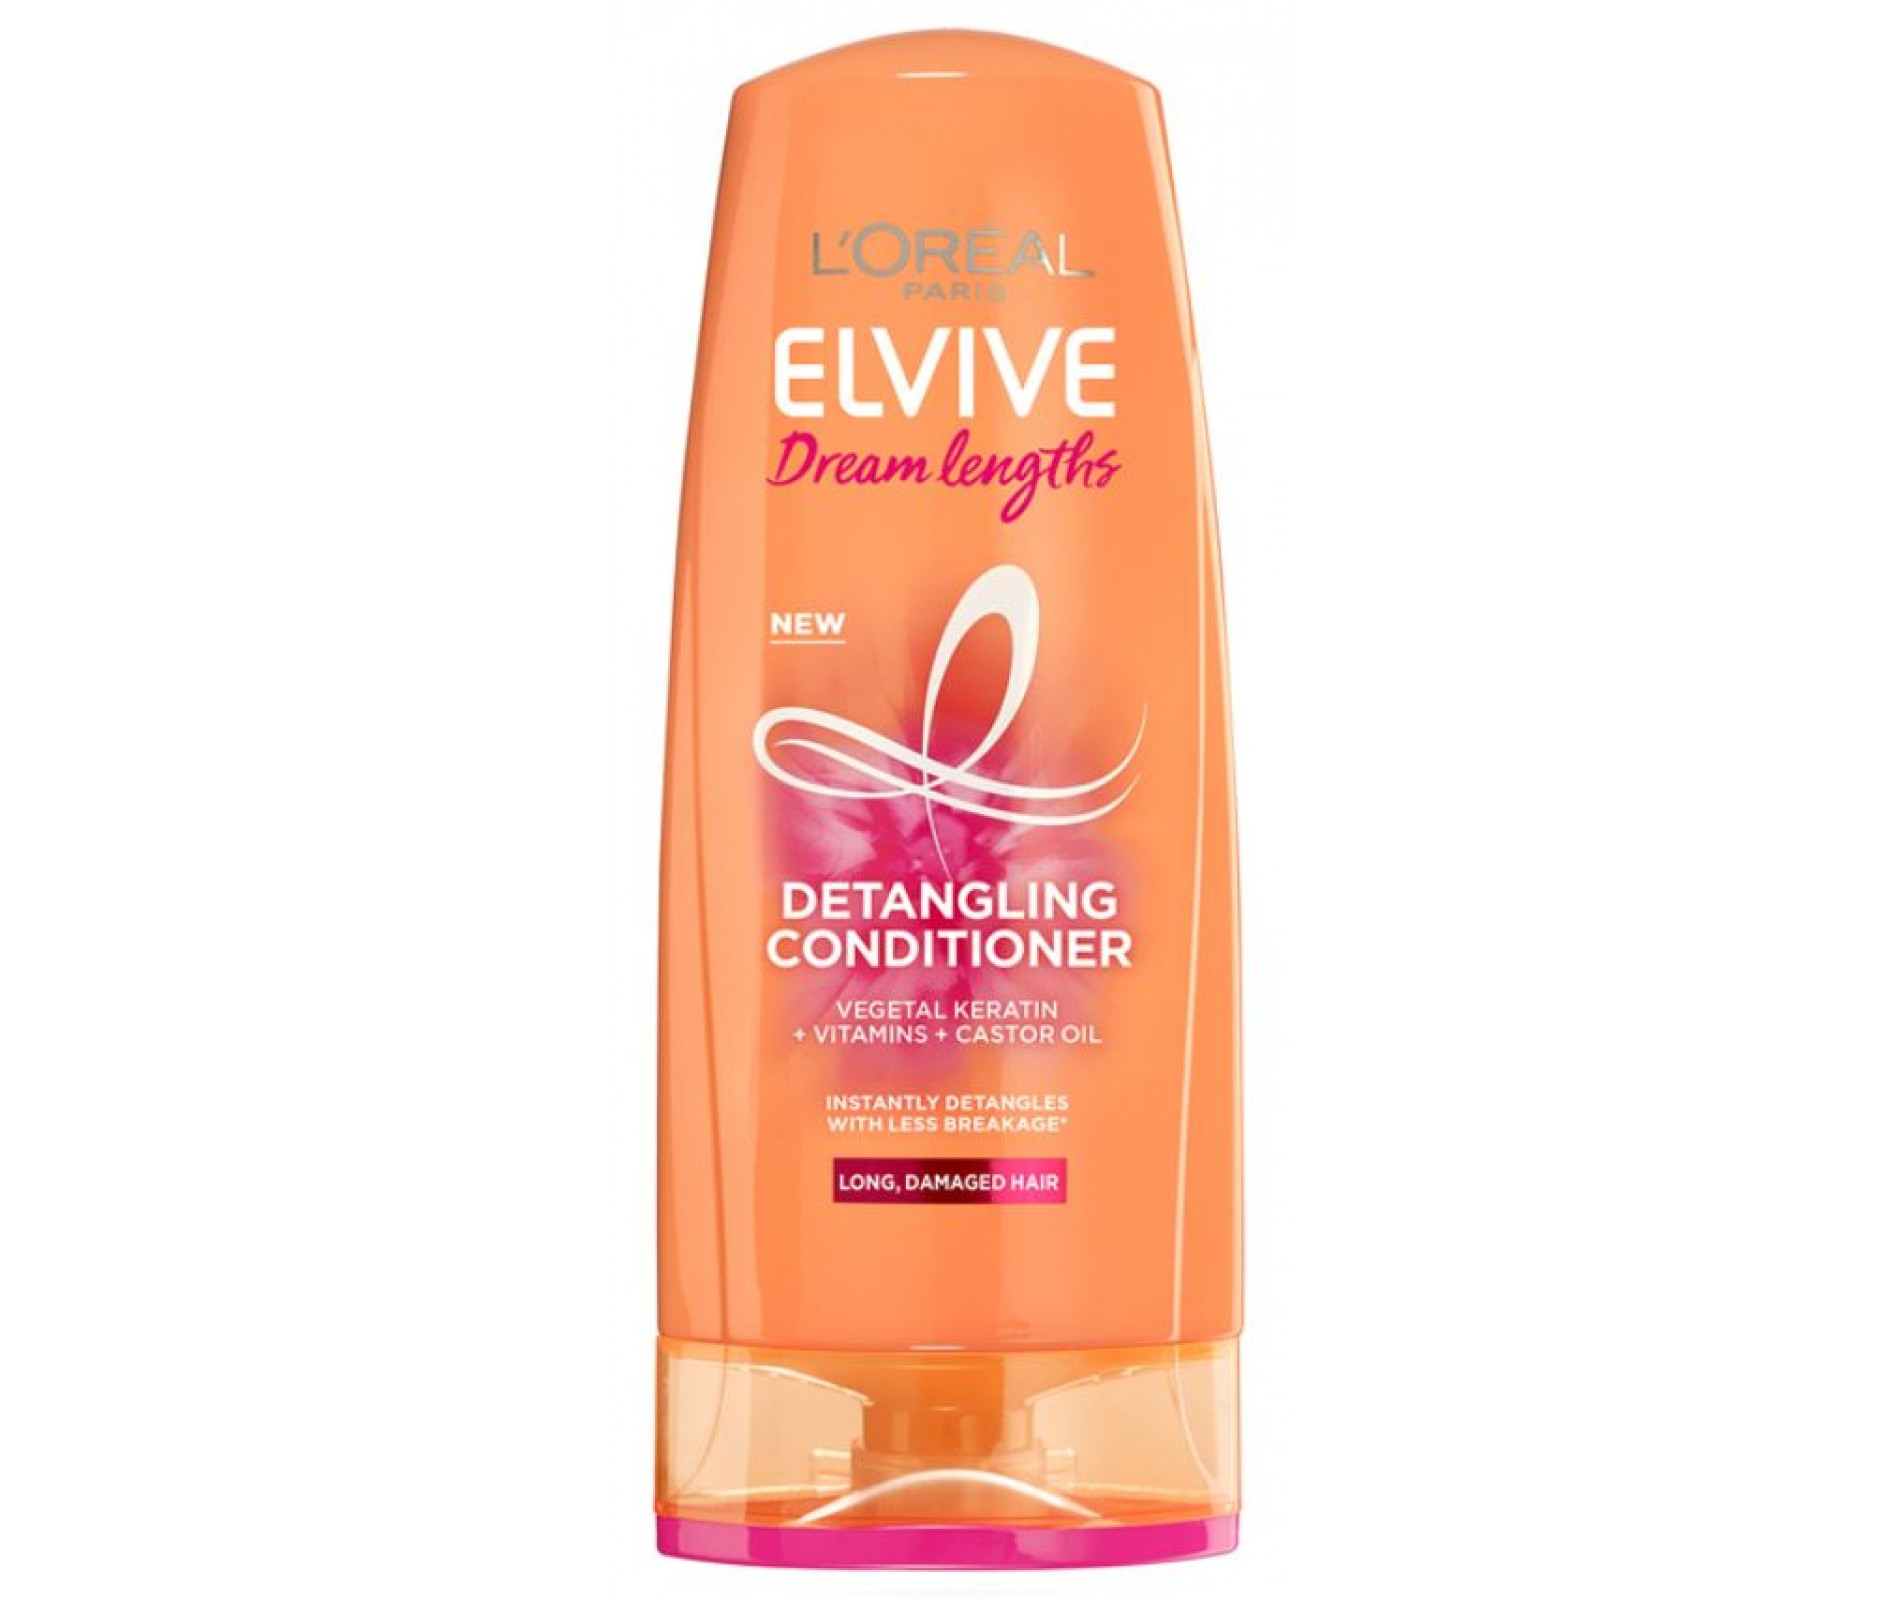 Elseve Dream Long Detangling Conditioner